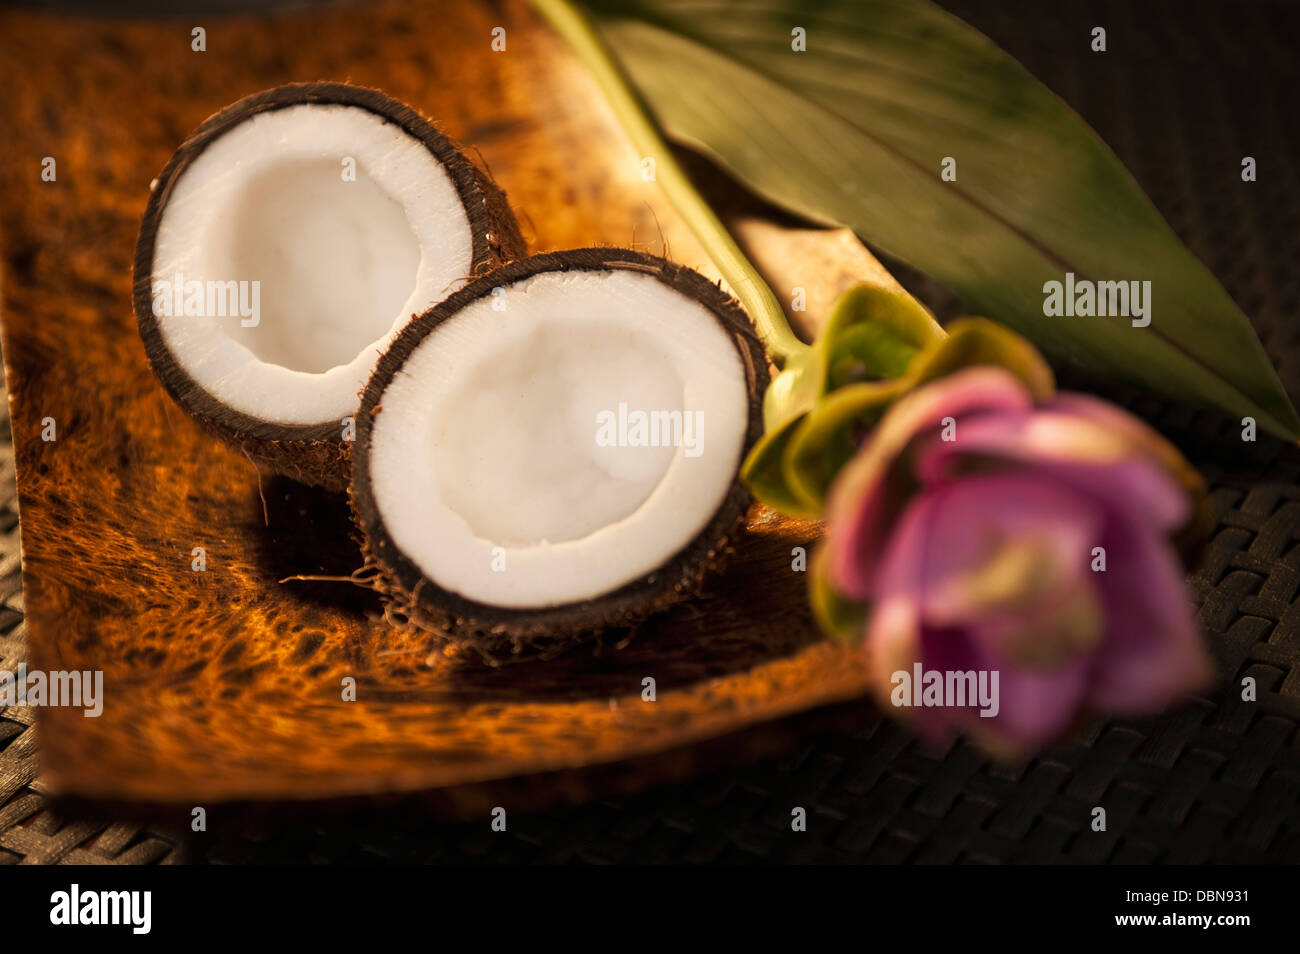 coconut flower stock photos amp coconut flower stock images